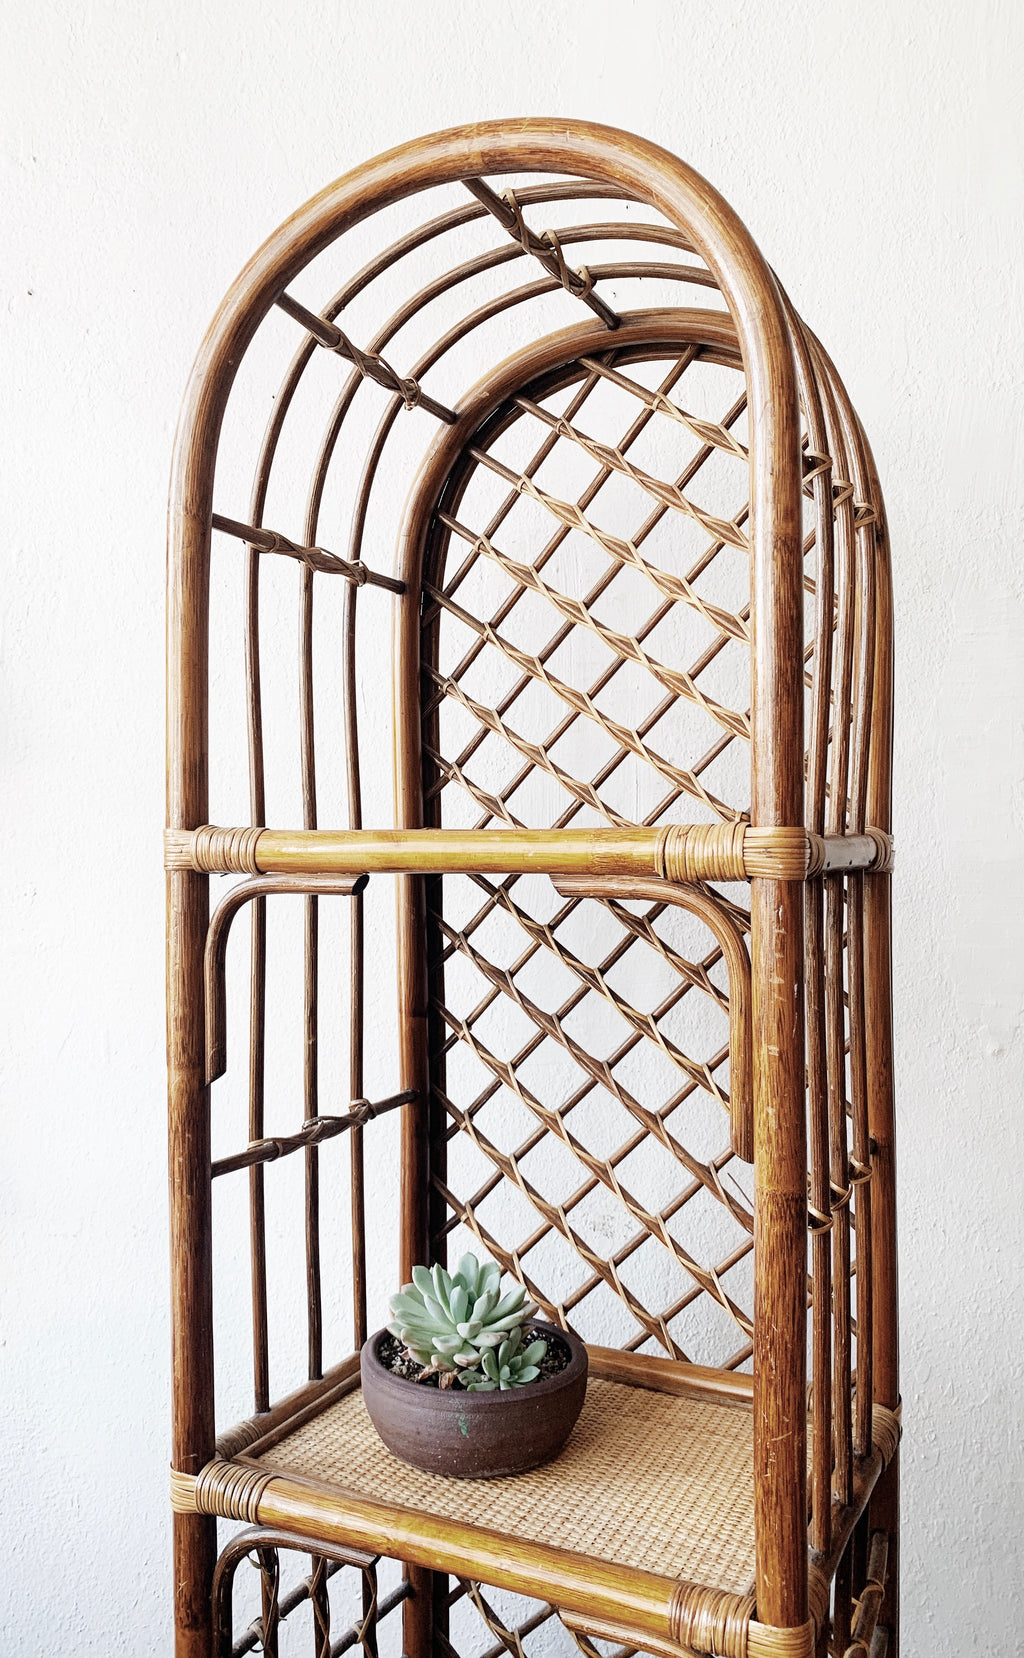 Vintage Arched Rattan Shelf